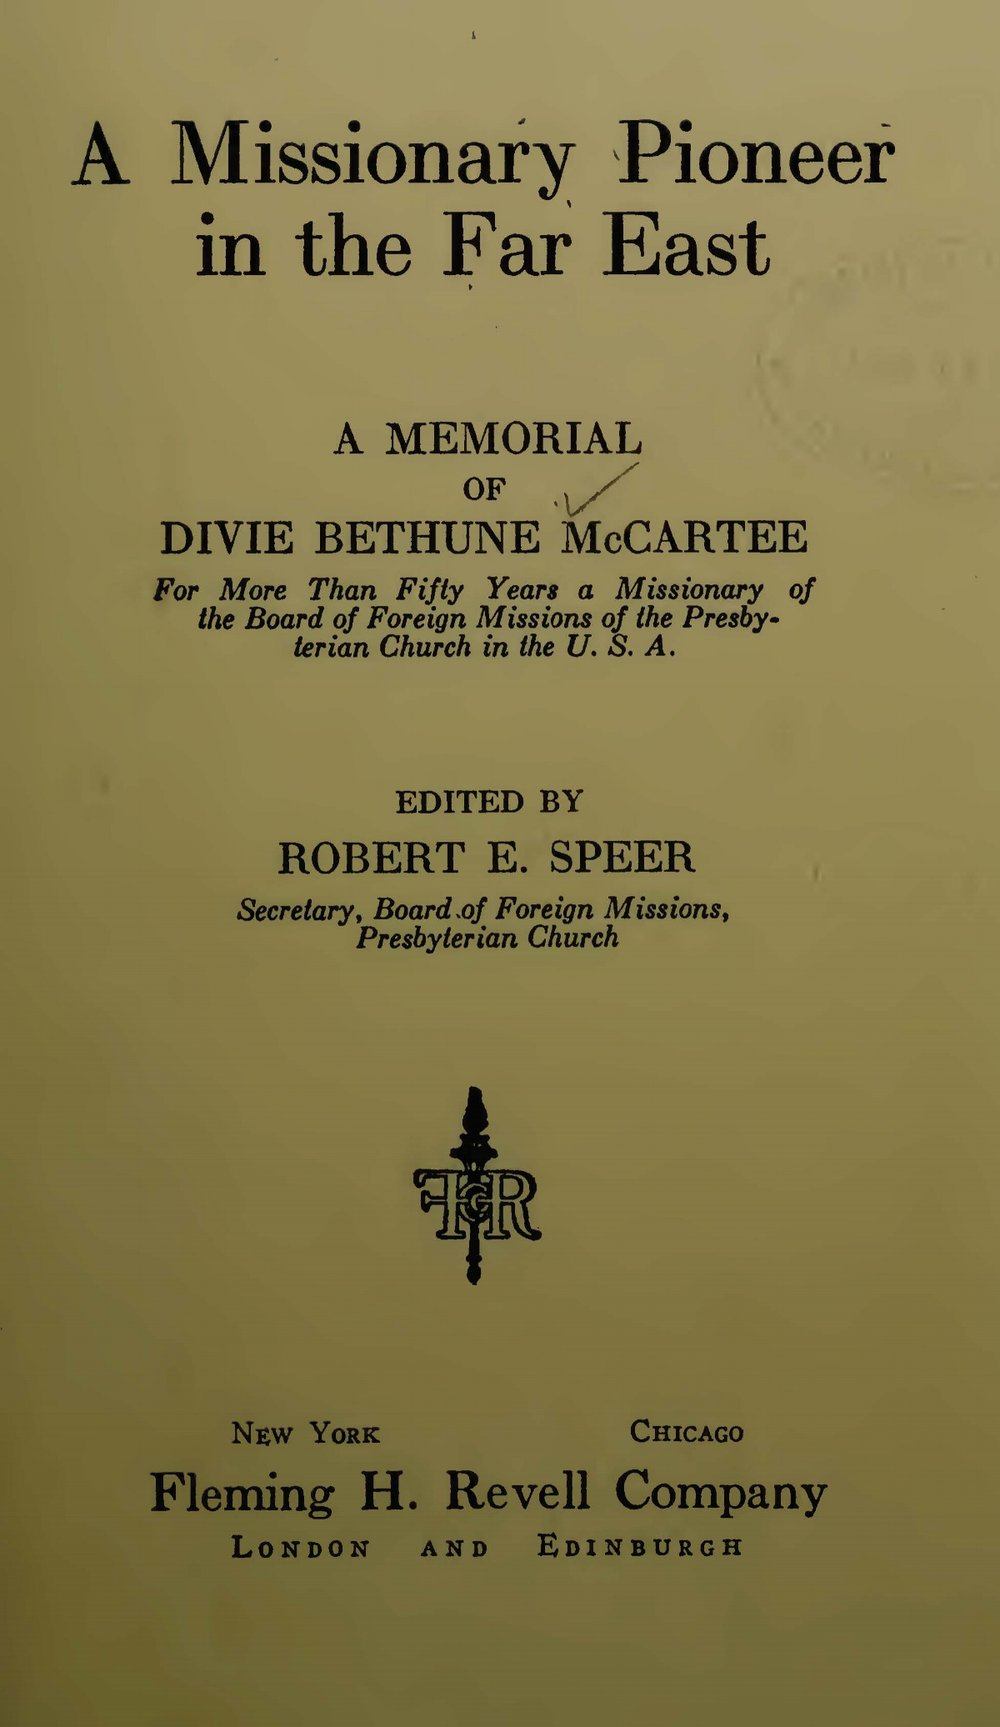 Speer, Robert Elliott, A Missionary Pioneer in the Far East; A Memorial of Divie Bethune McCartee Title Page.jpg